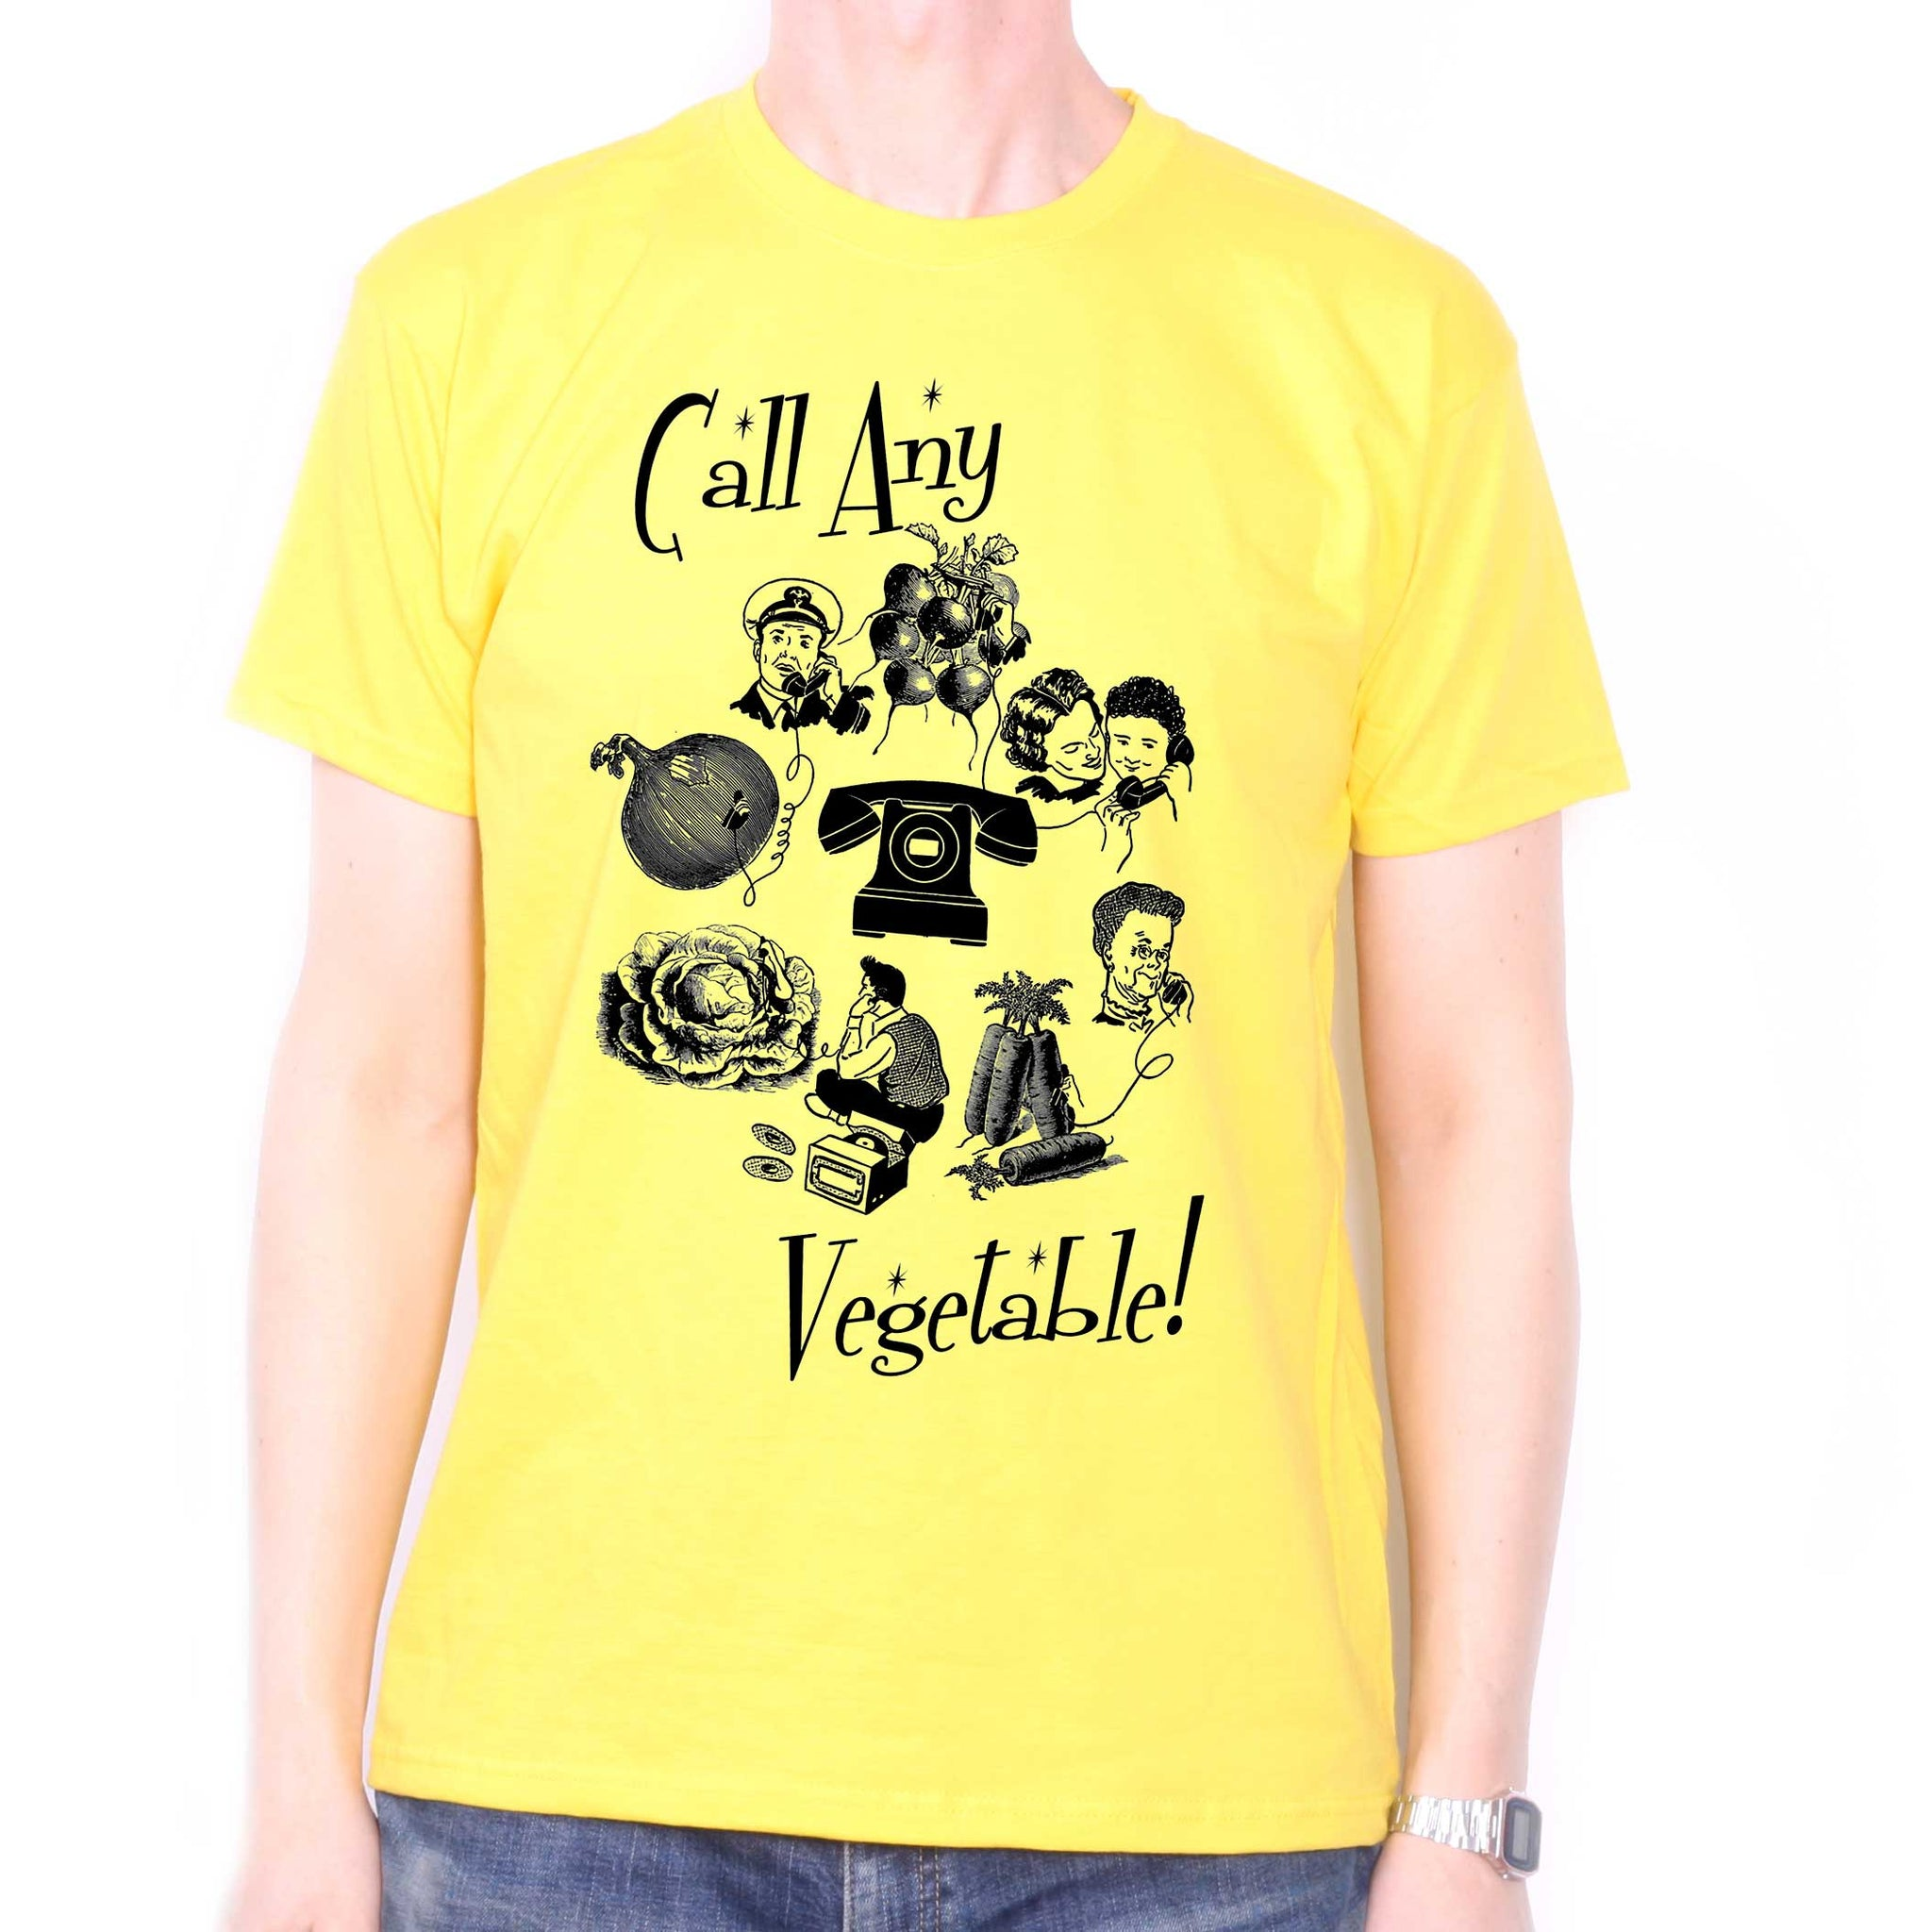 2e00f7eef12dc Call Any Vegetable T Shirt - A Zappa Inspired Telecoms Poster!